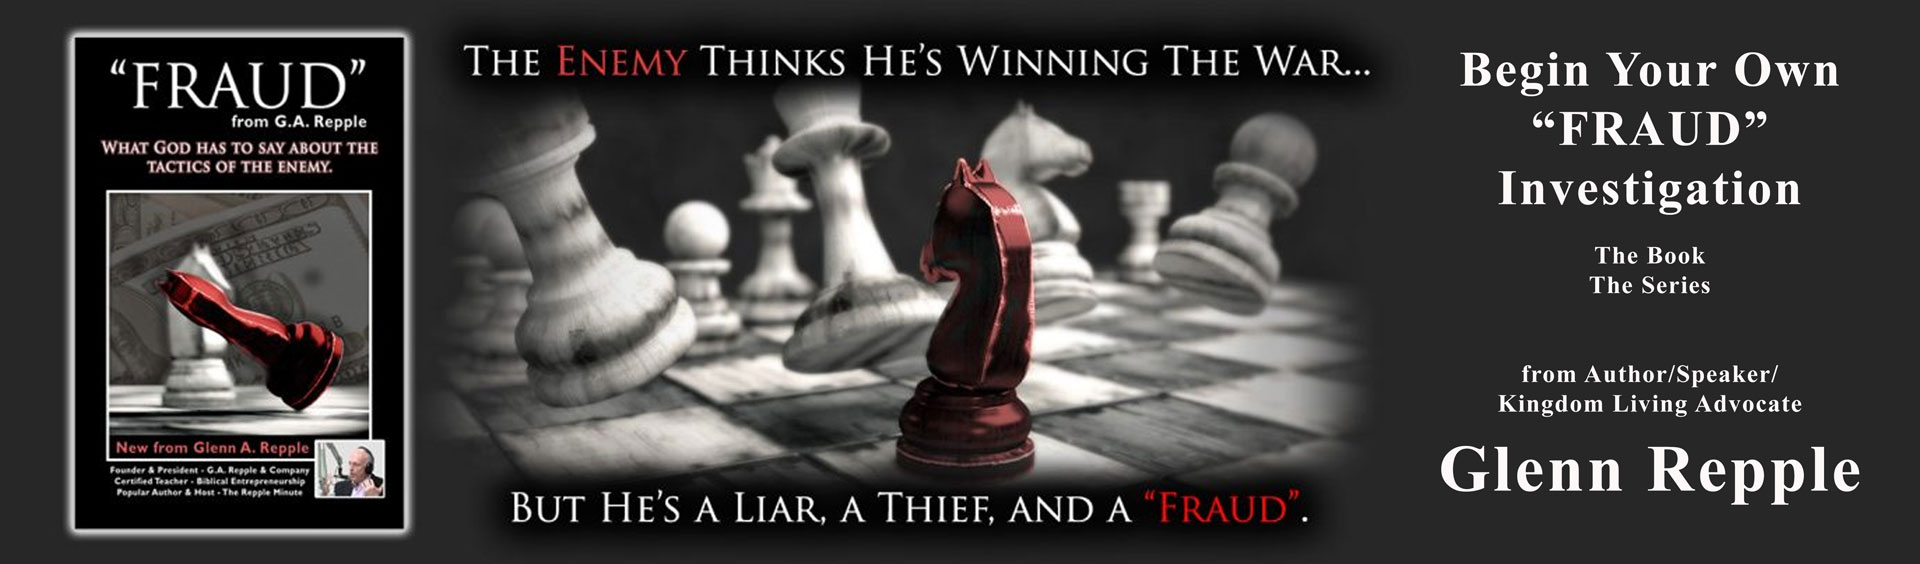 Fraud by G.A. Repple